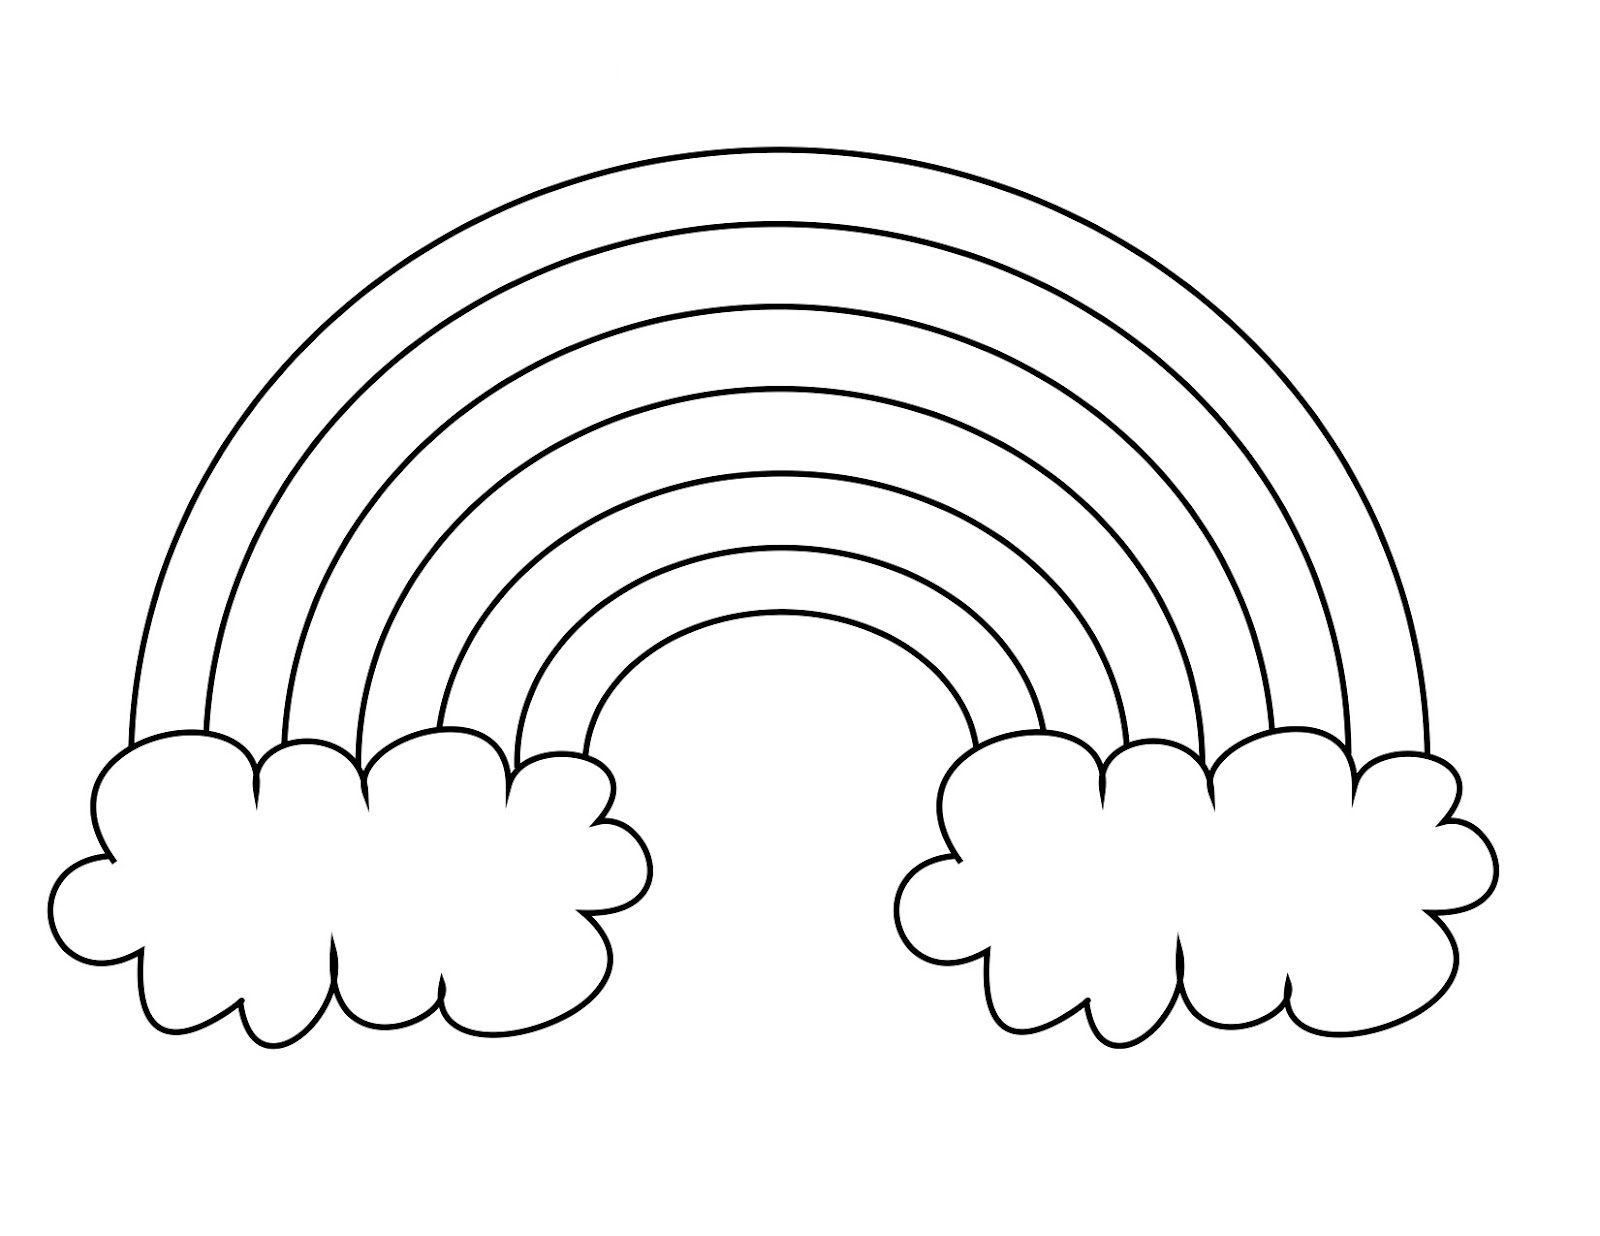 Rainbow Coloring Page For Pasta Cotton Ball Wax Paper